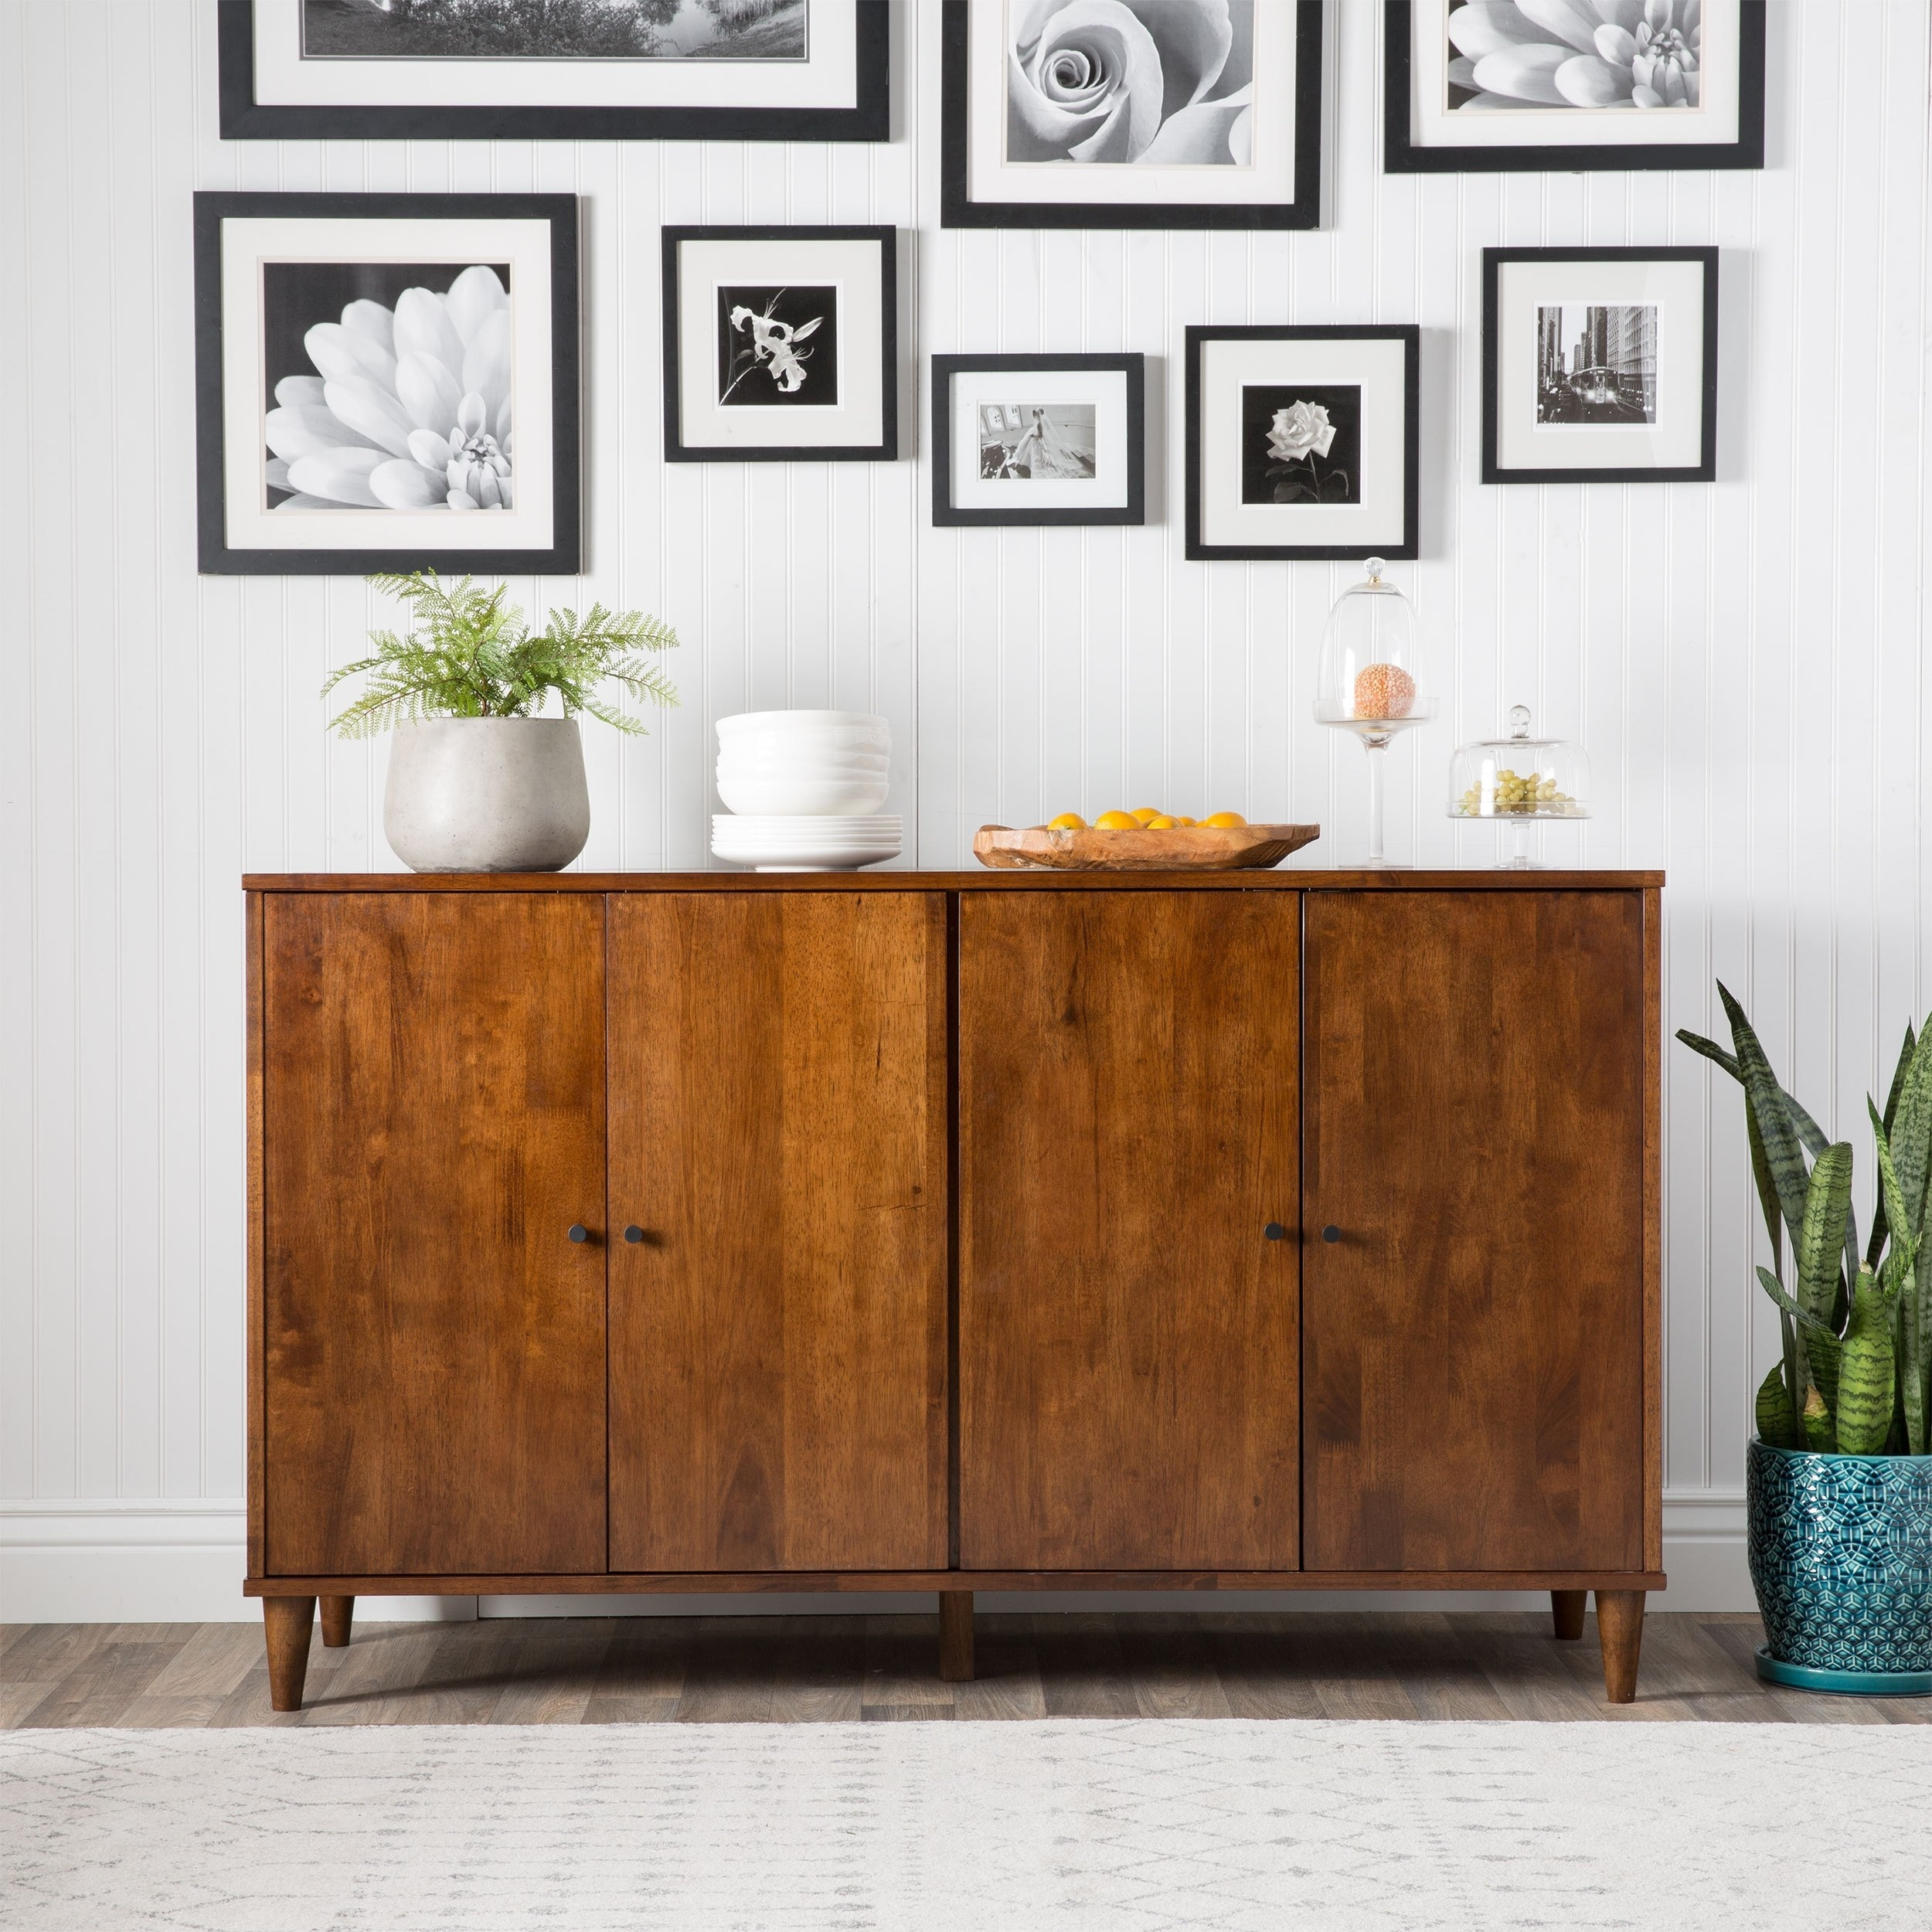 Shop Jasper Laine Vilas Tobacco-Finished 4-Door Dining Buffet - Free pertaining to Vintage Finish 4-Door Sideboards (Image 19 of 30)